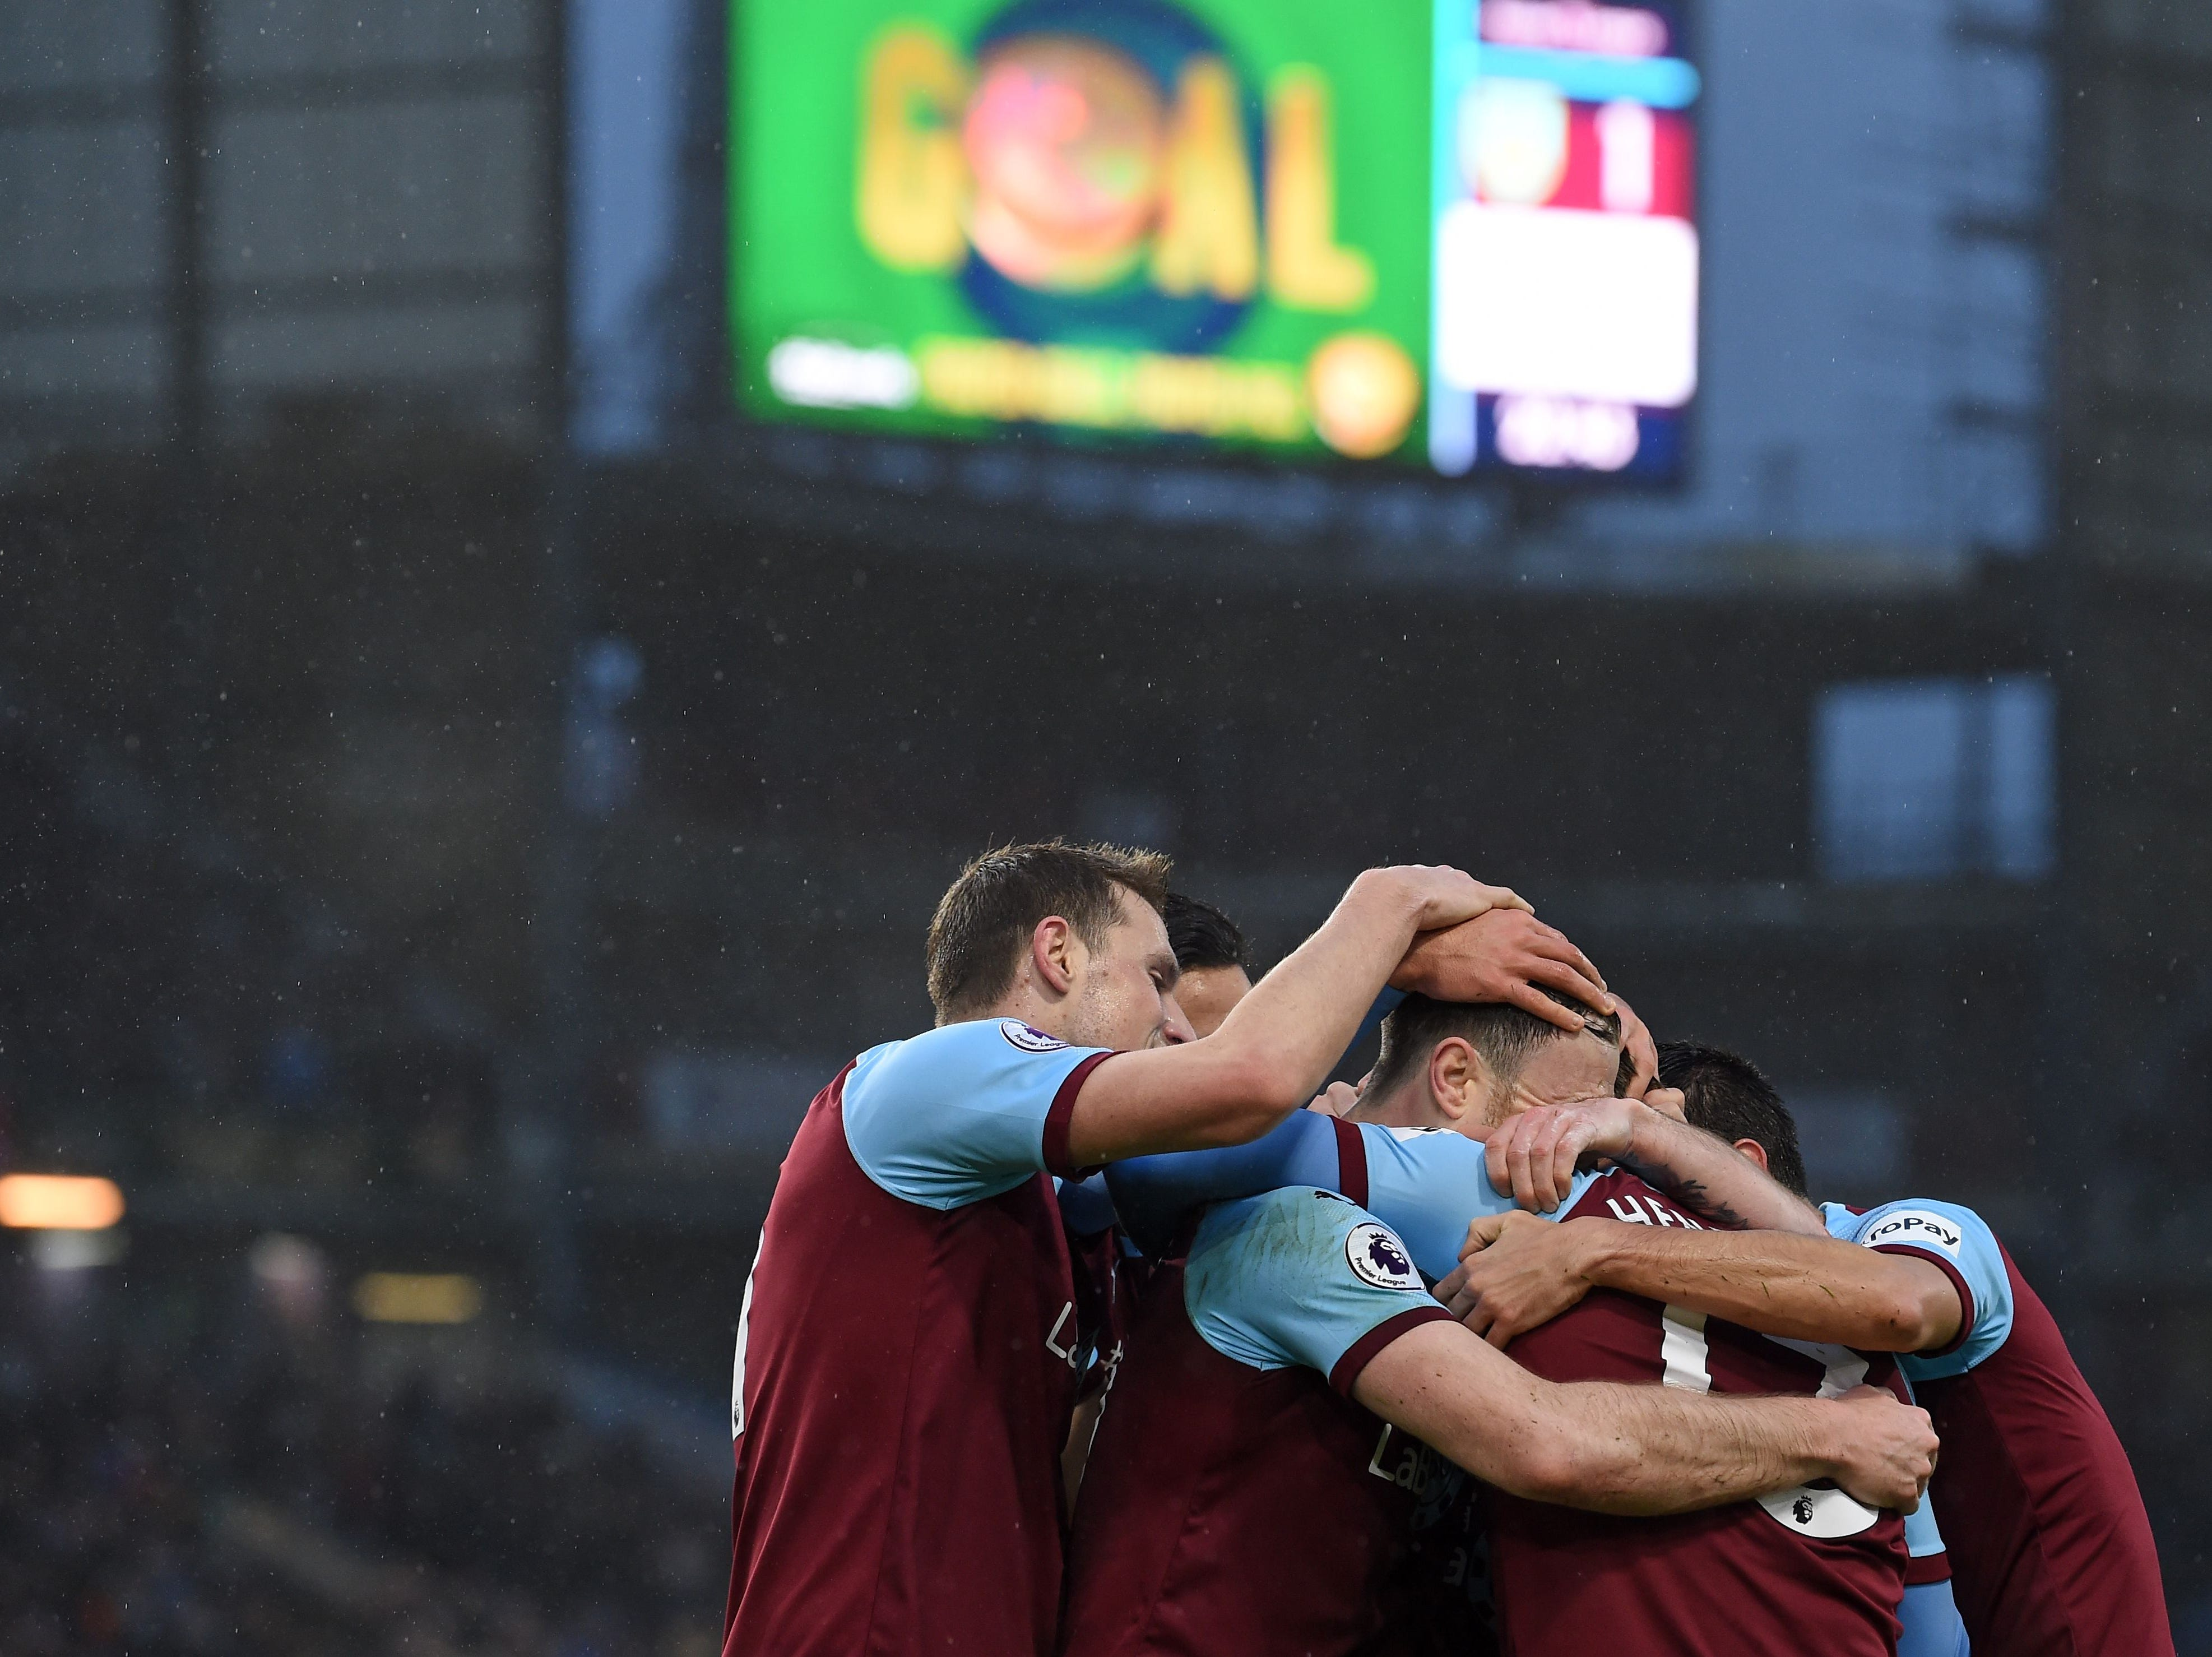 Burnley players celebrate after a goal against Fulham.